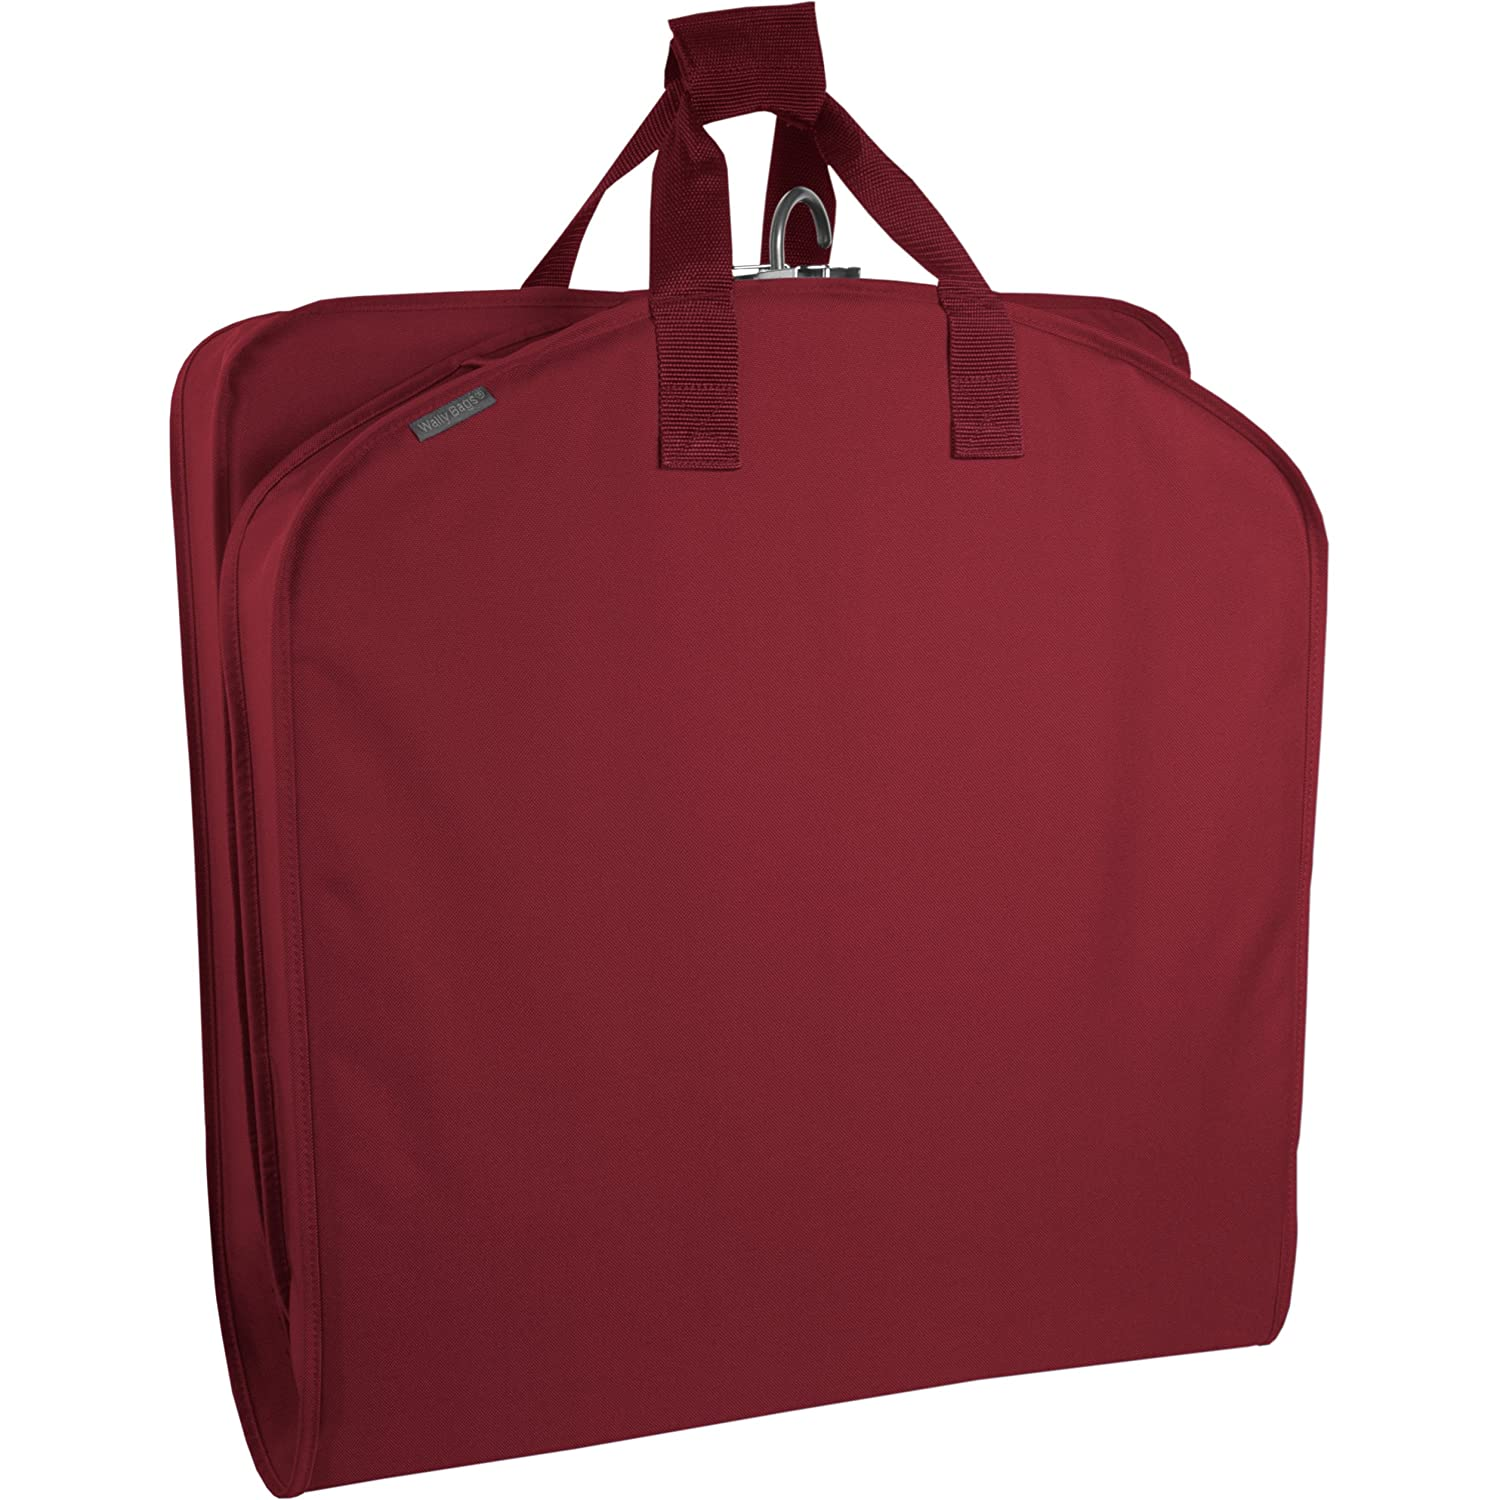 WallyBags 40-inch Suit Length, Carry-On Garment Bag 756